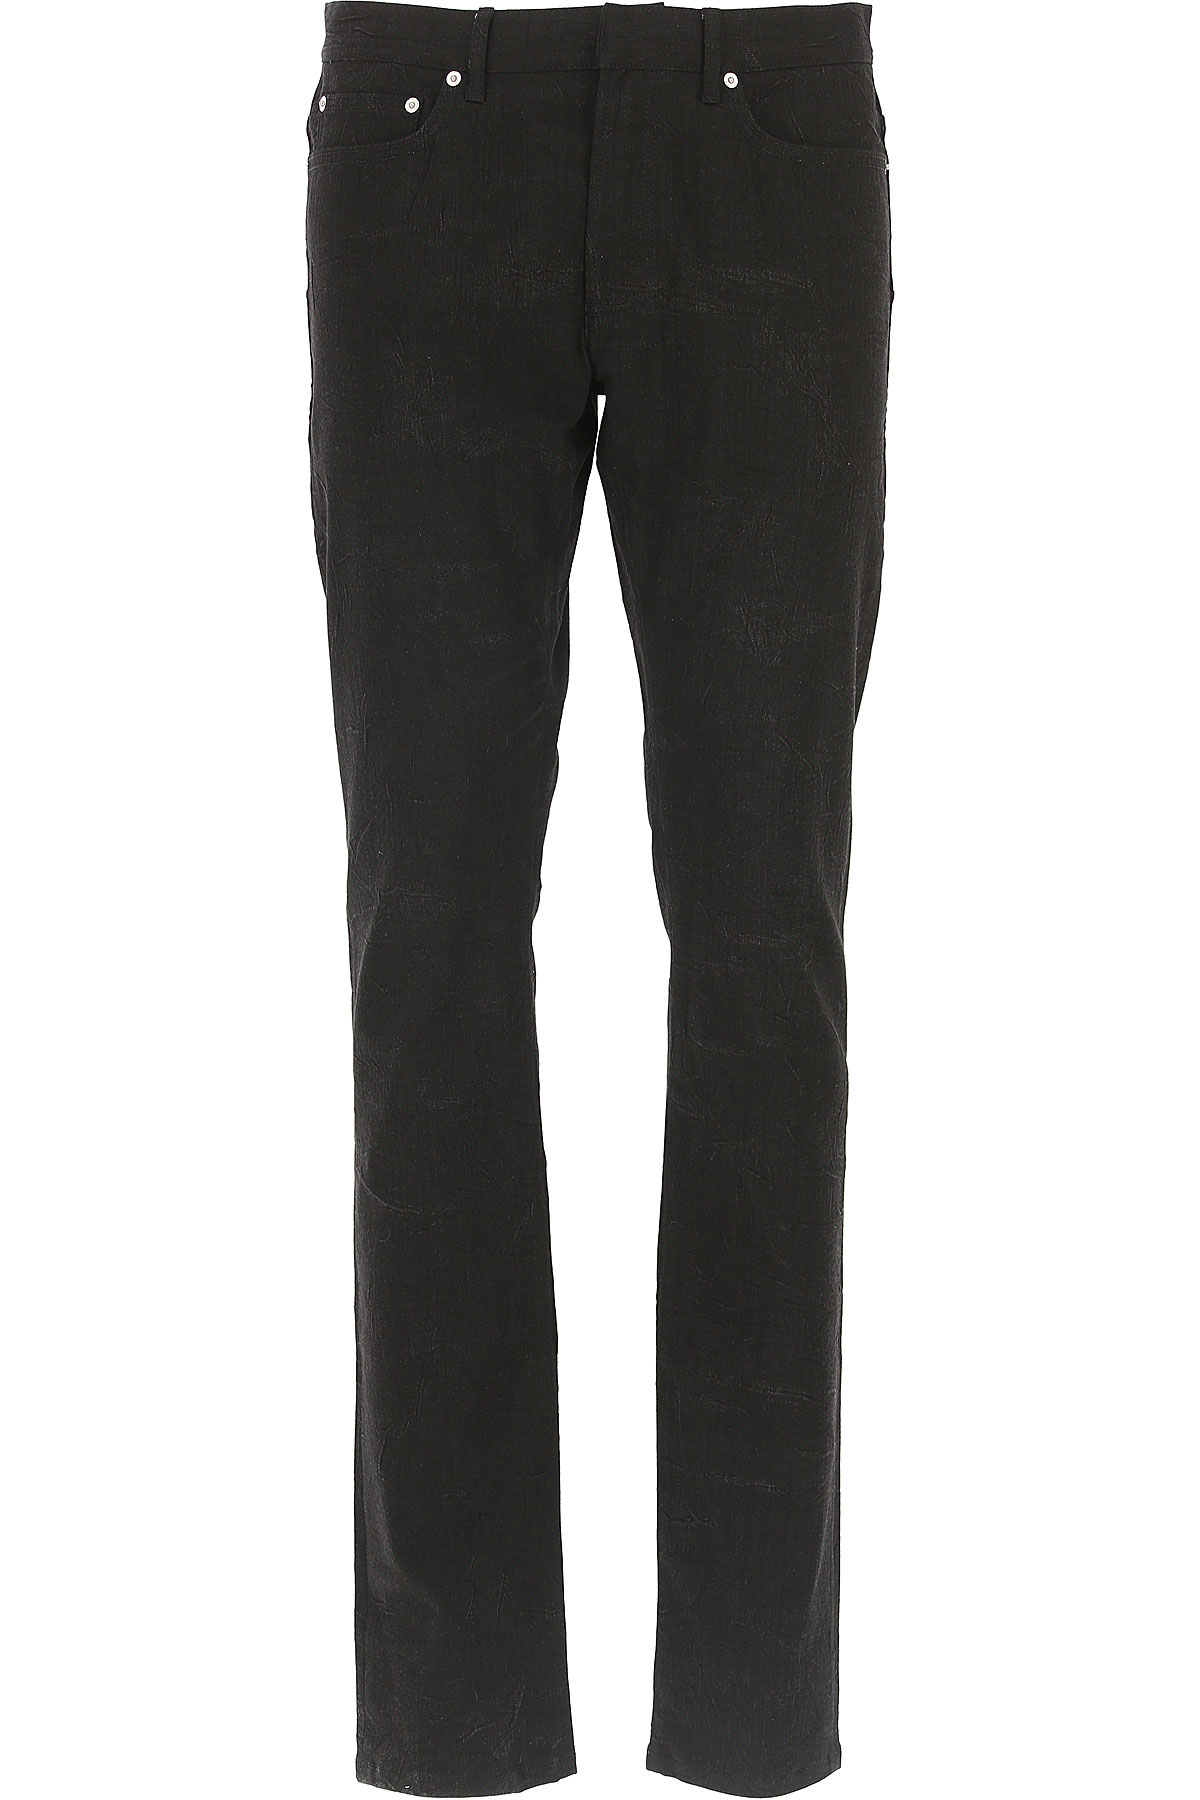 Christian Dior Jeans On Sale in Outlet, Black, Cotton, 2019, 32 33